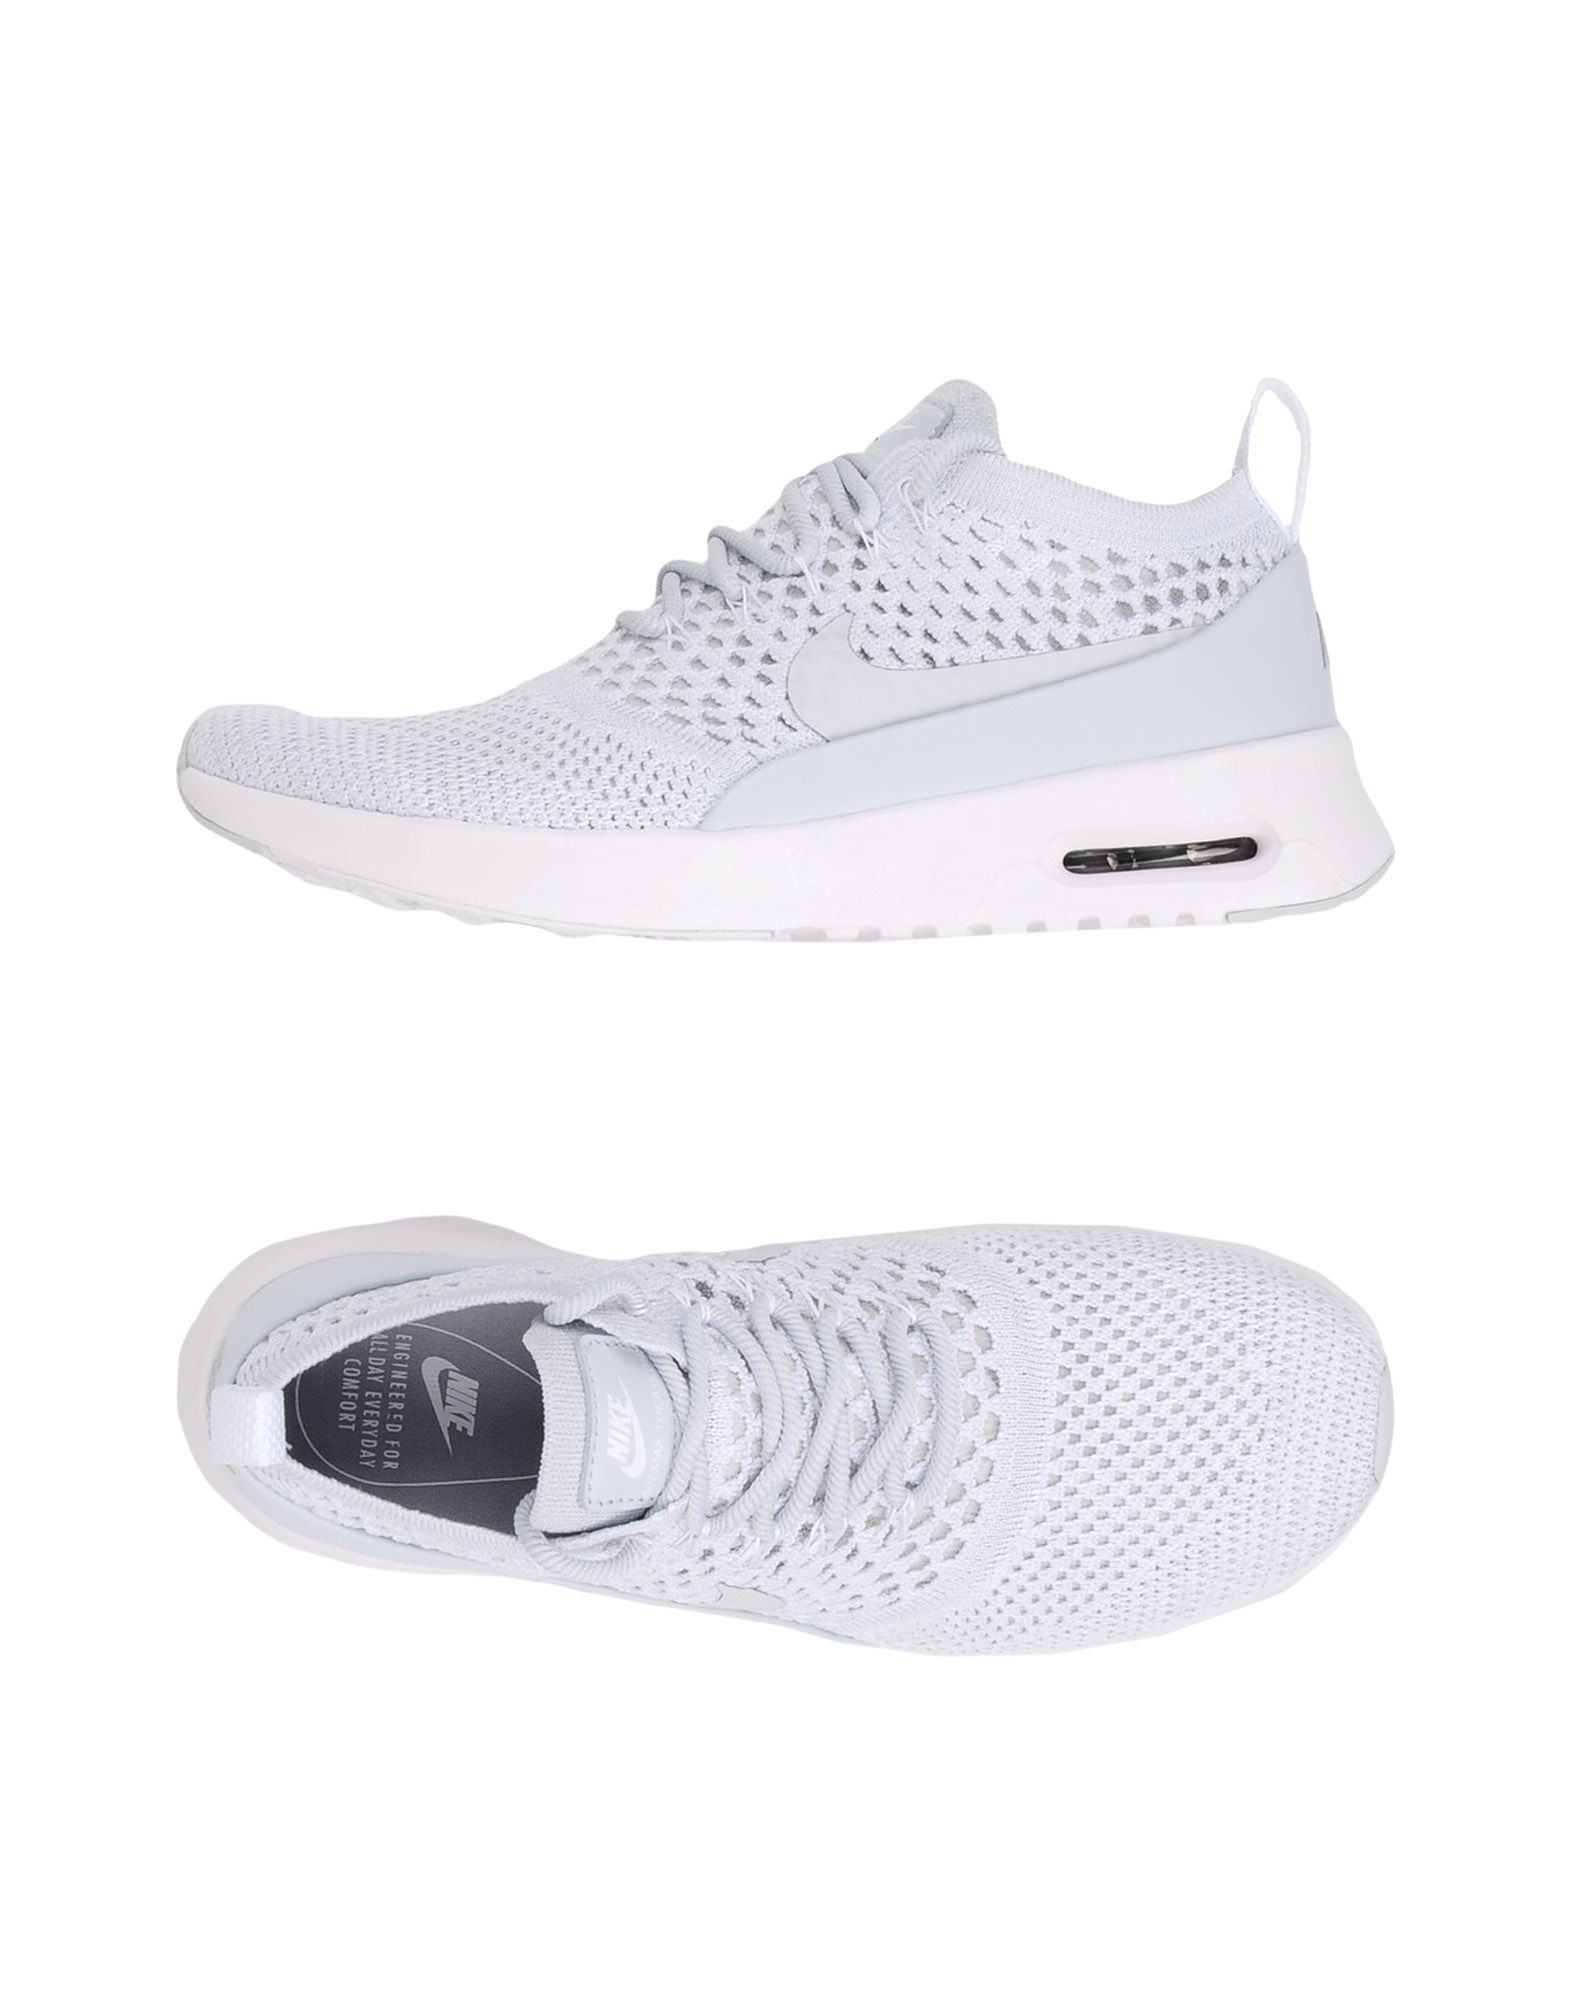 Sneakers Nike   Air Max Thea Ultra Fk - Donna - Acquista online su